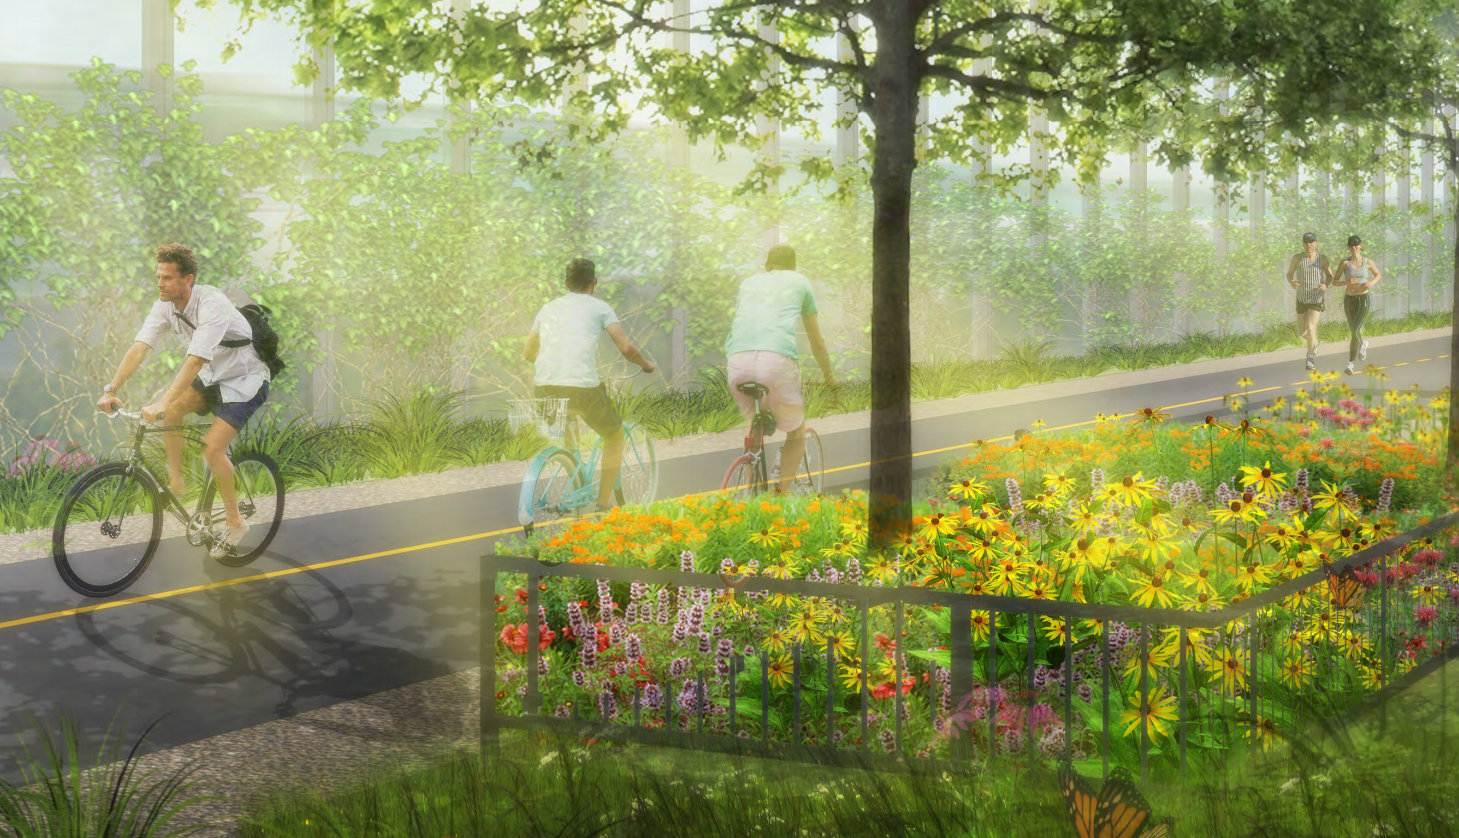 Rendering of lush green path with people biking and running.